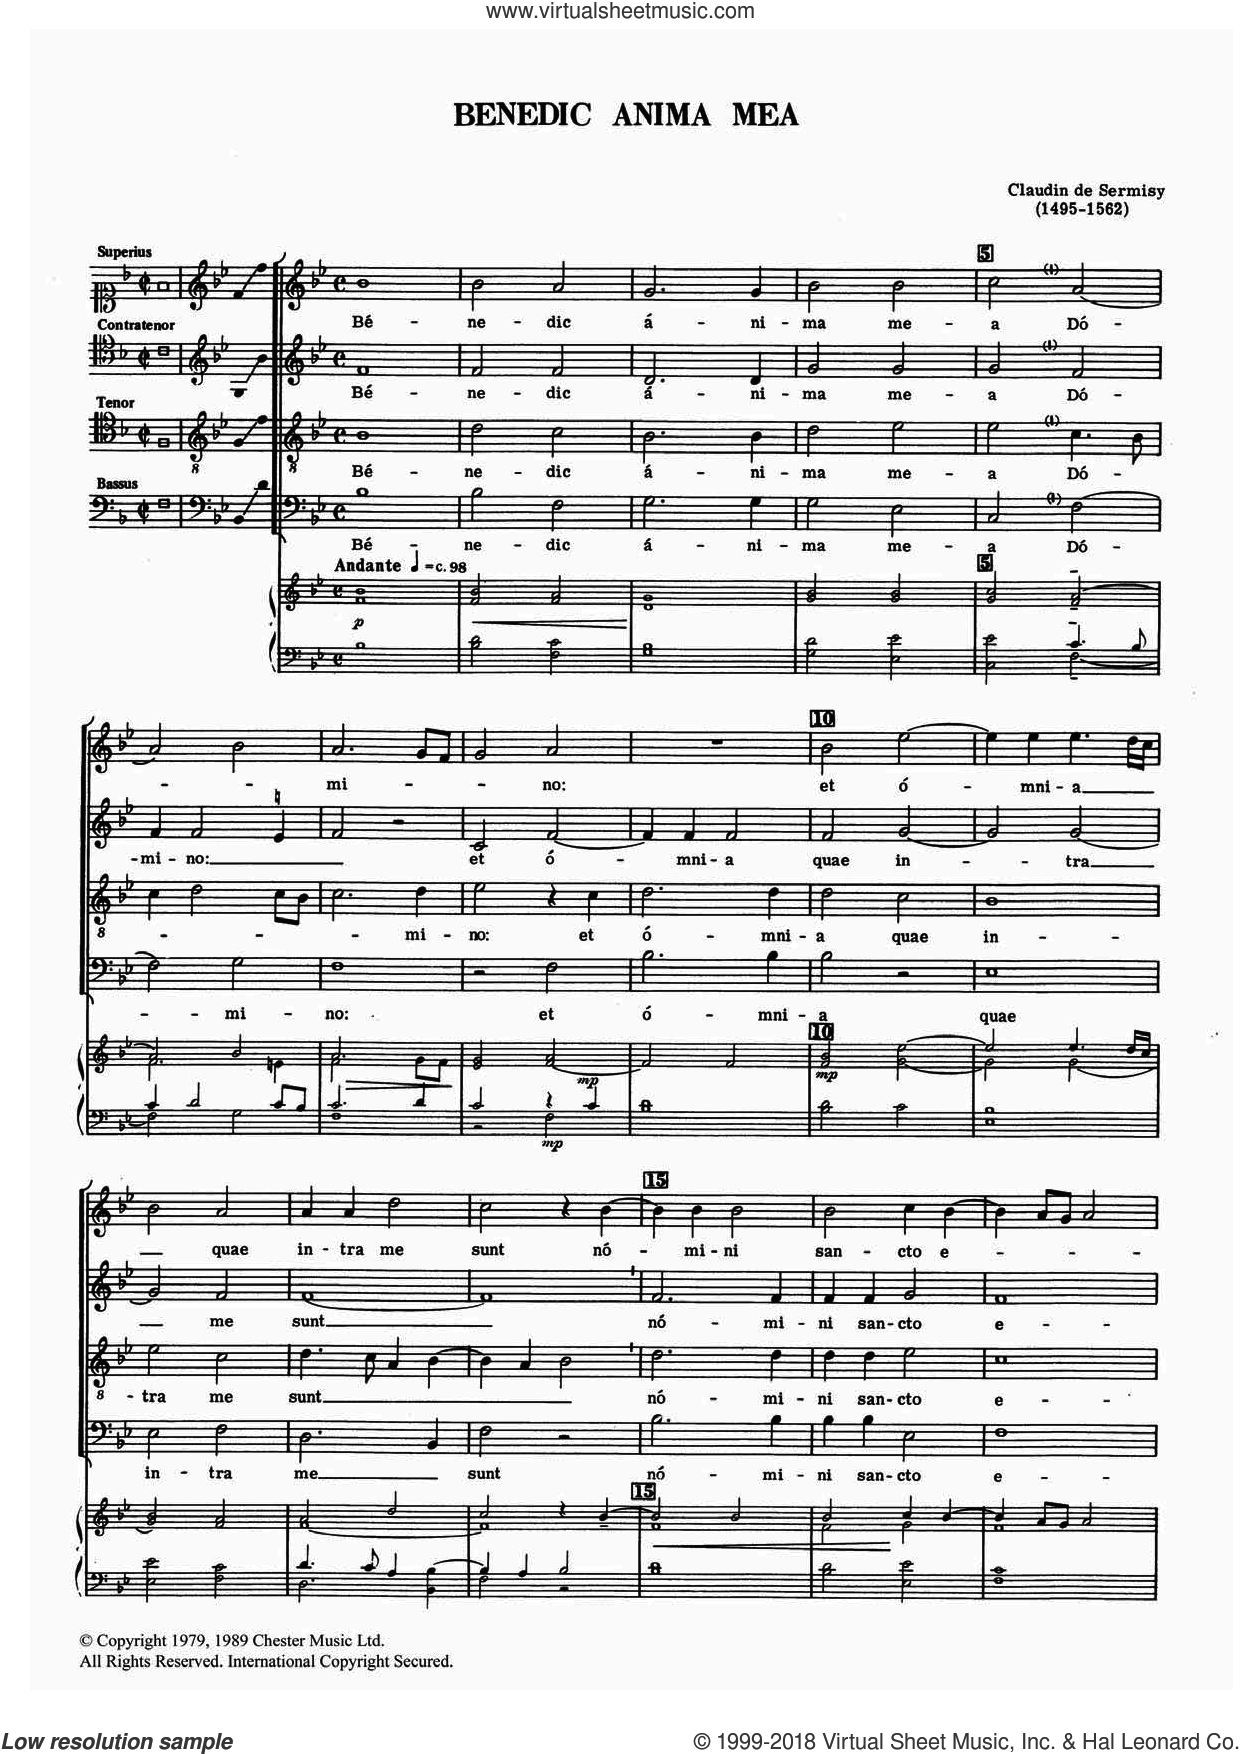 Benedic Anima Mea sheet music for choir by Claudin de Sermisy. Score Image Preview.